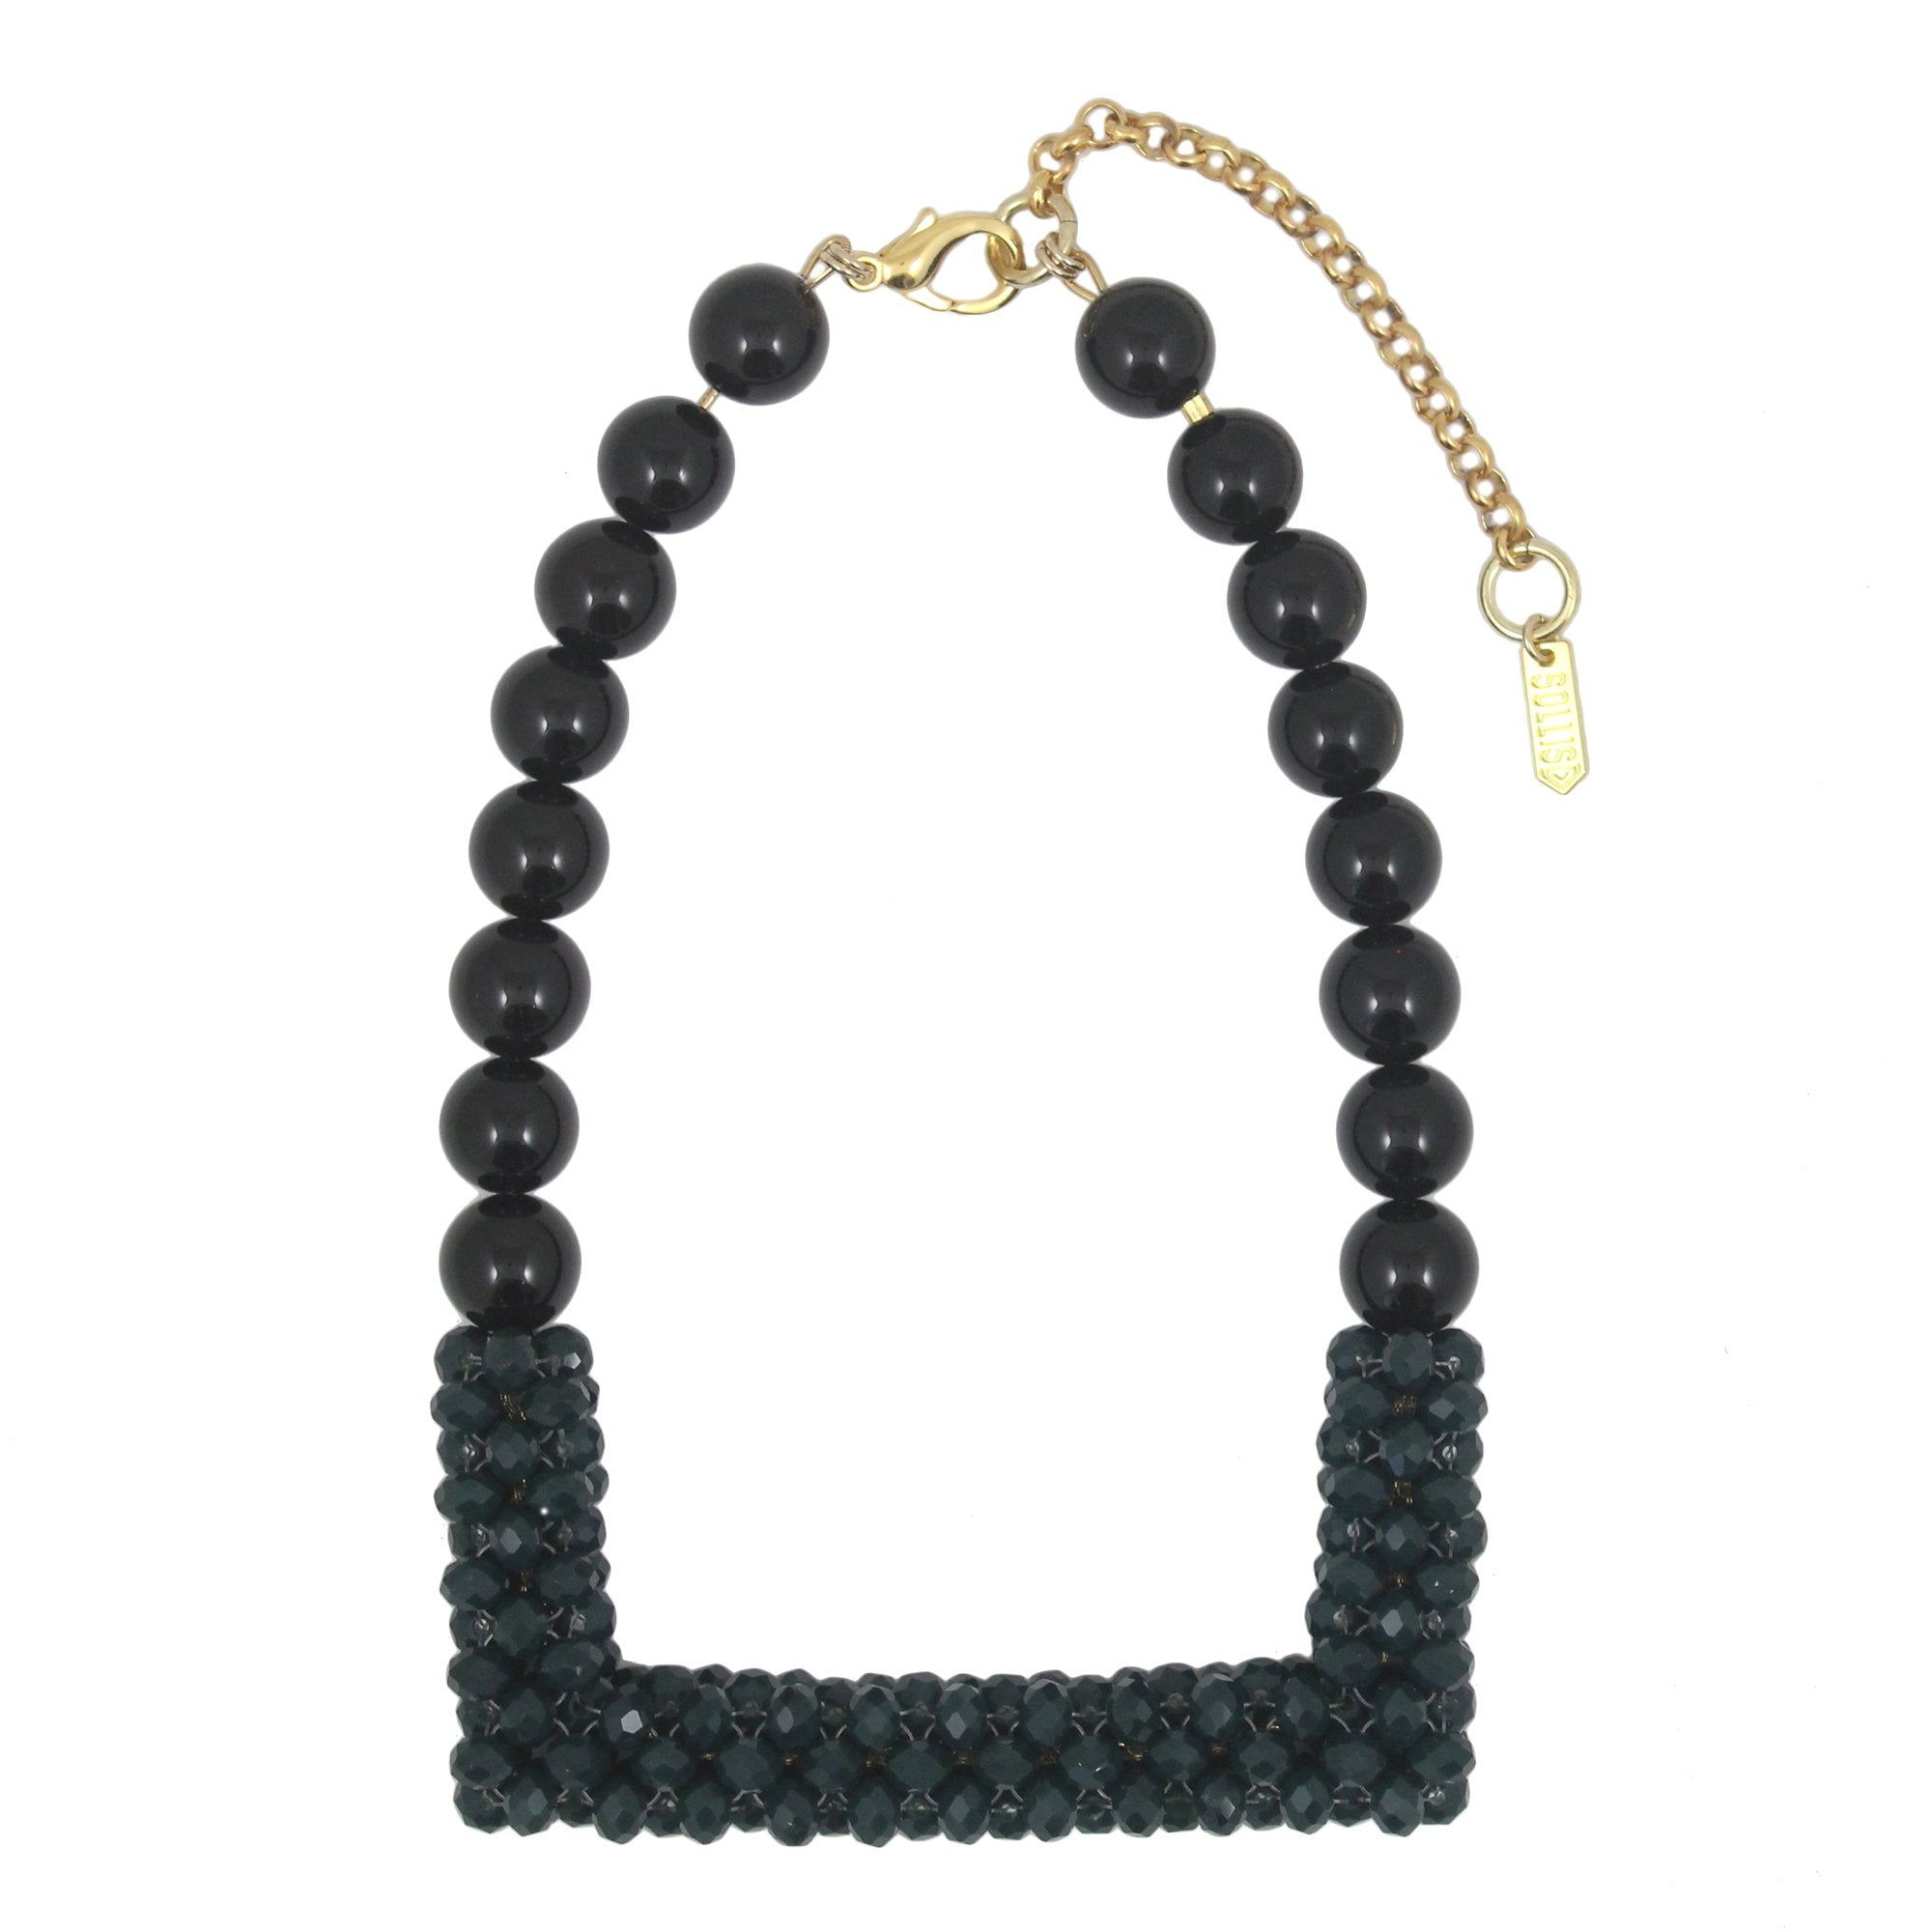 YARRA necklace - 30% OFF